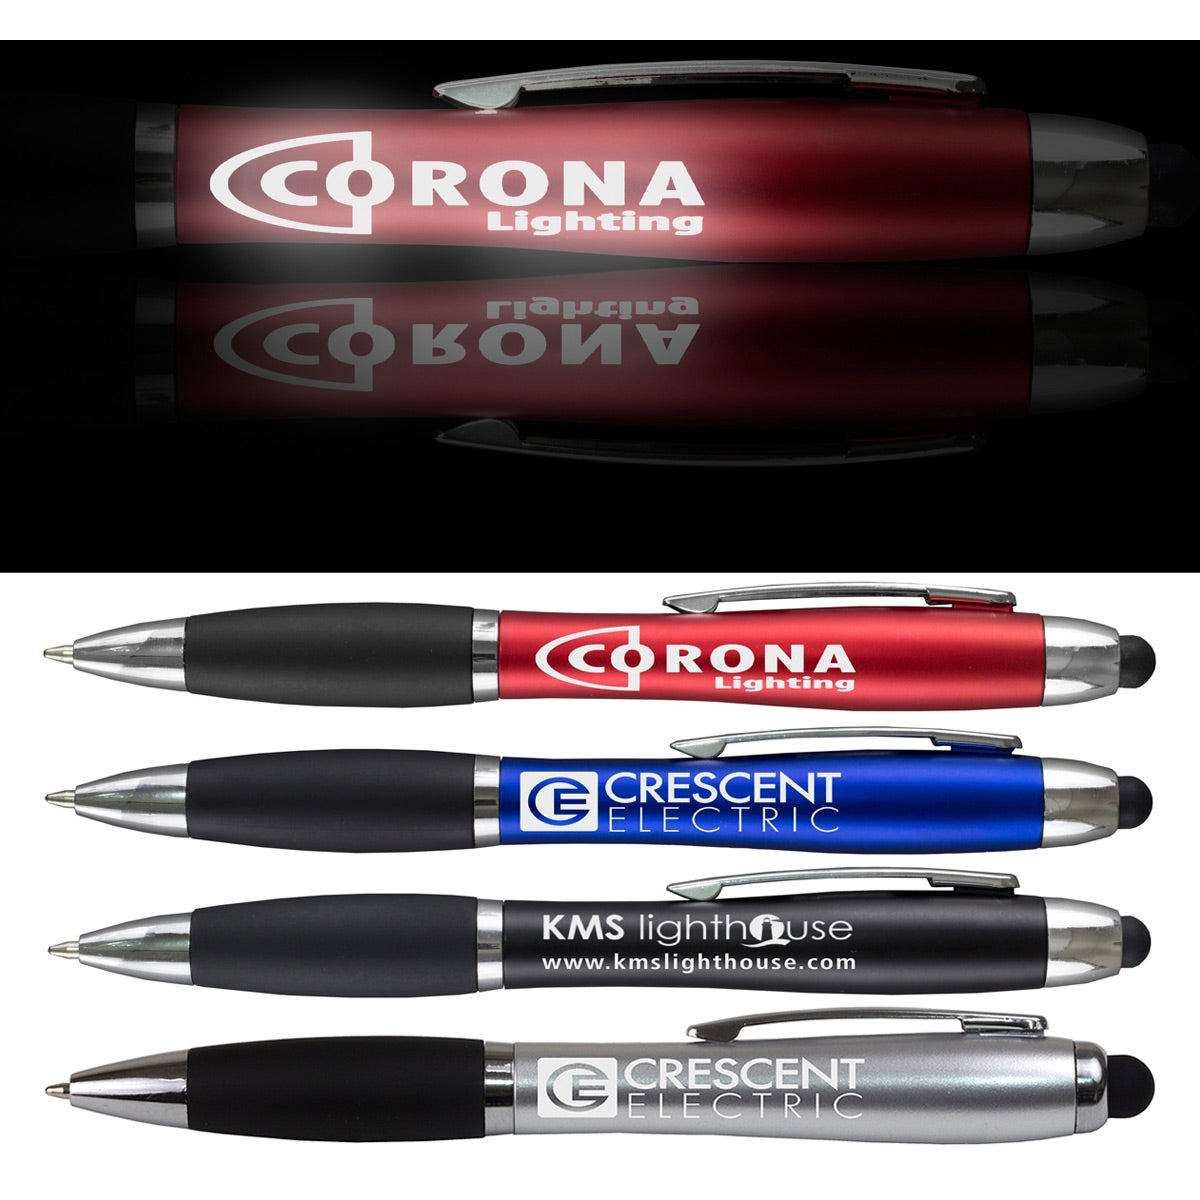 The Corona Light Up Stylus Pen